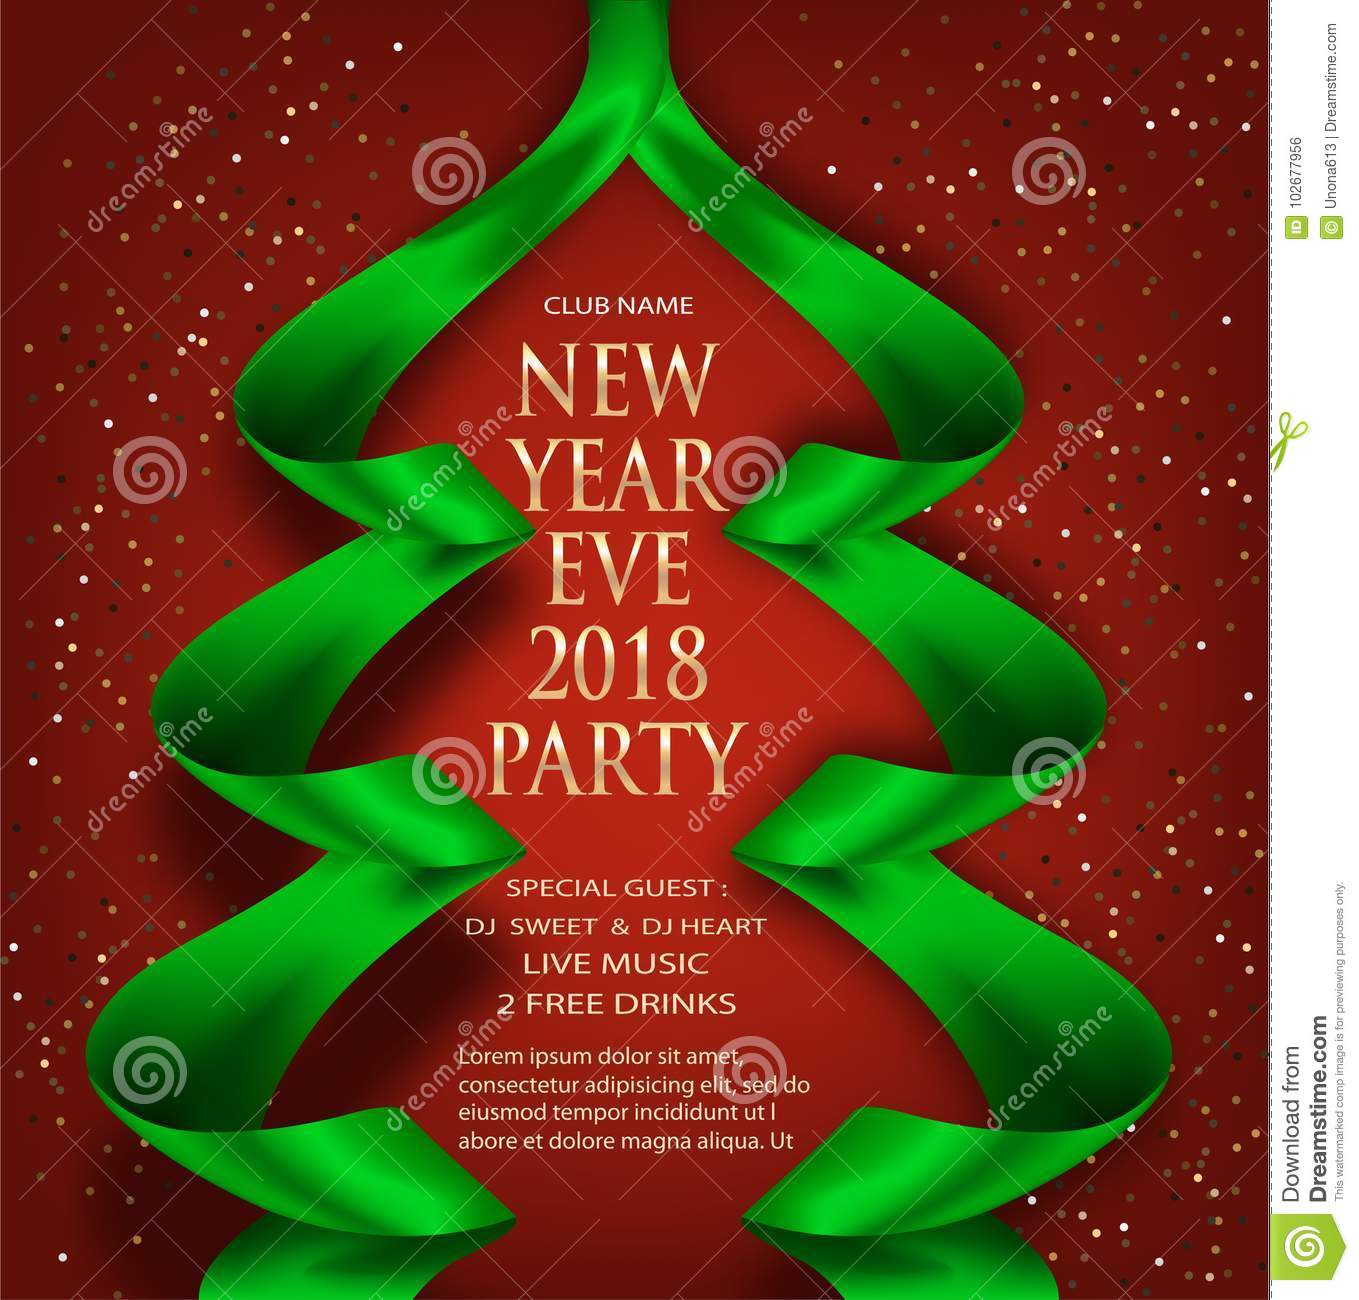 Elegant New Year Eve Invitation Card With Green Ribbons In